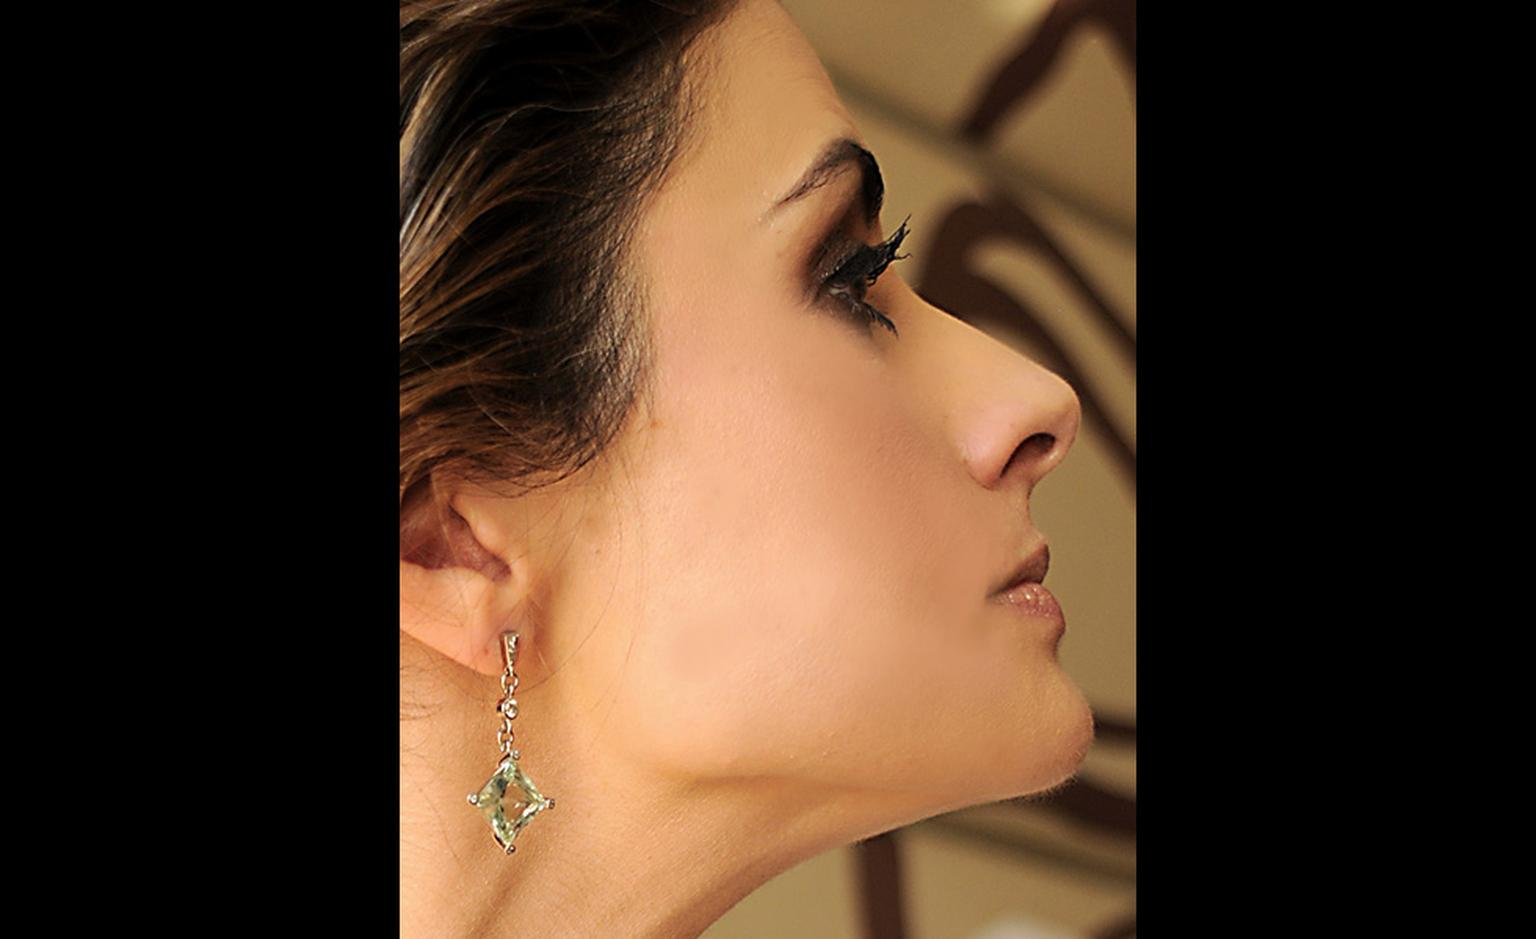 The Fairtrade gold earrings worn by Livia Firth to the Oscars 2011